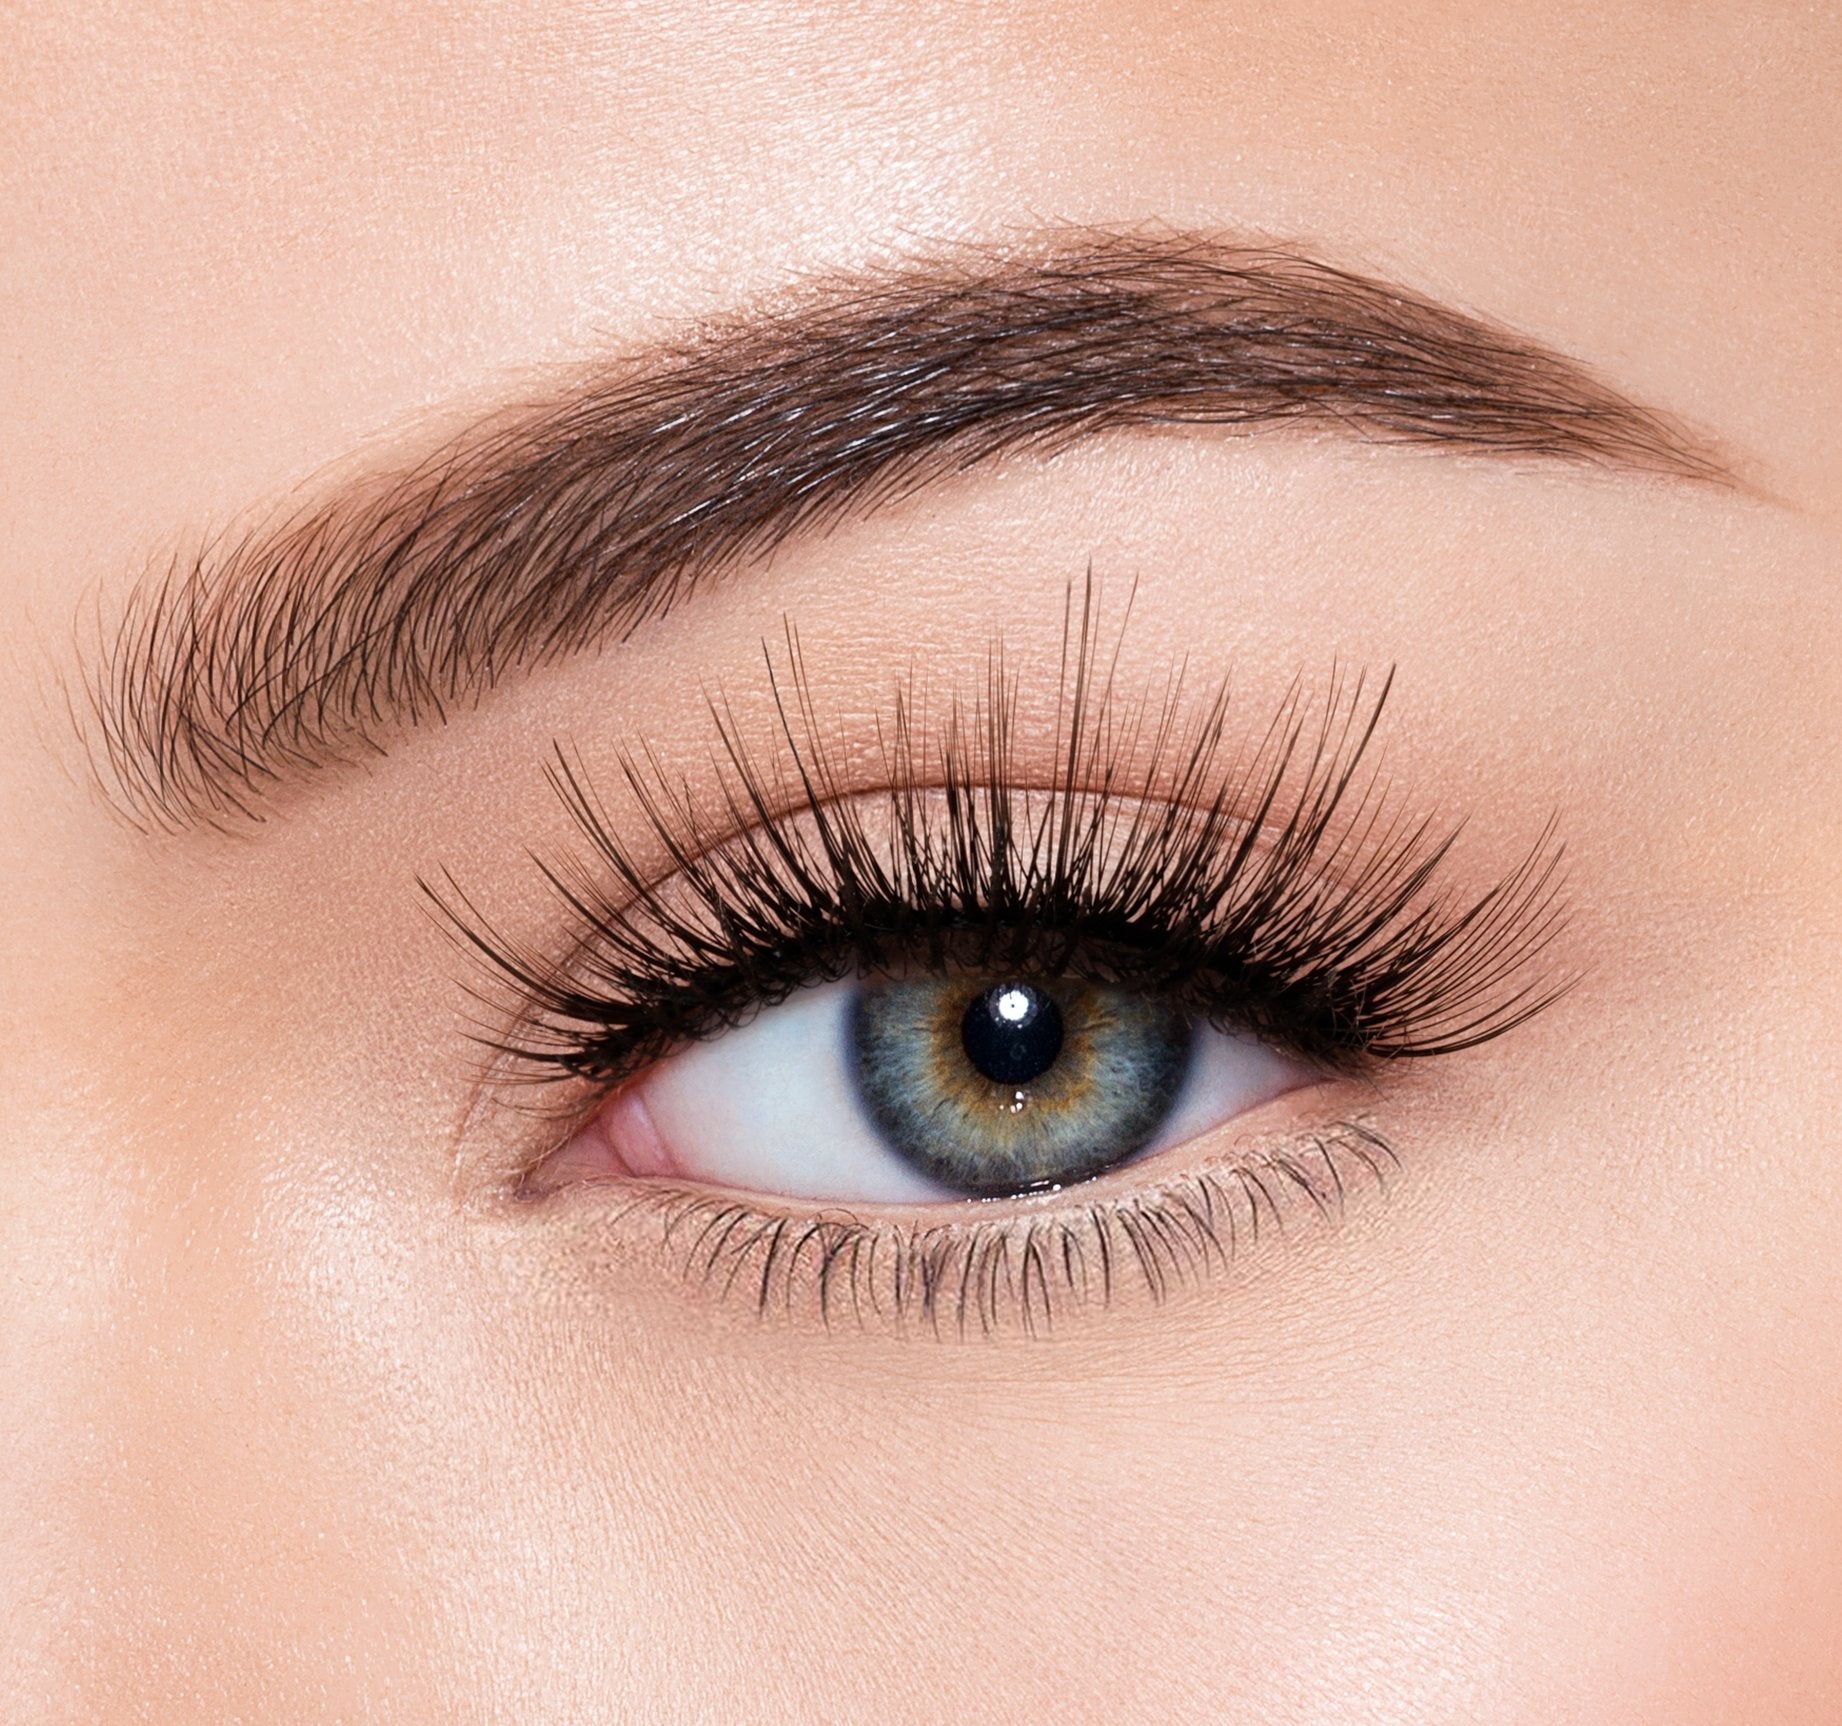 PREMIUM LASHES -  IRRESISTIBLE ON MODEL, view larger image